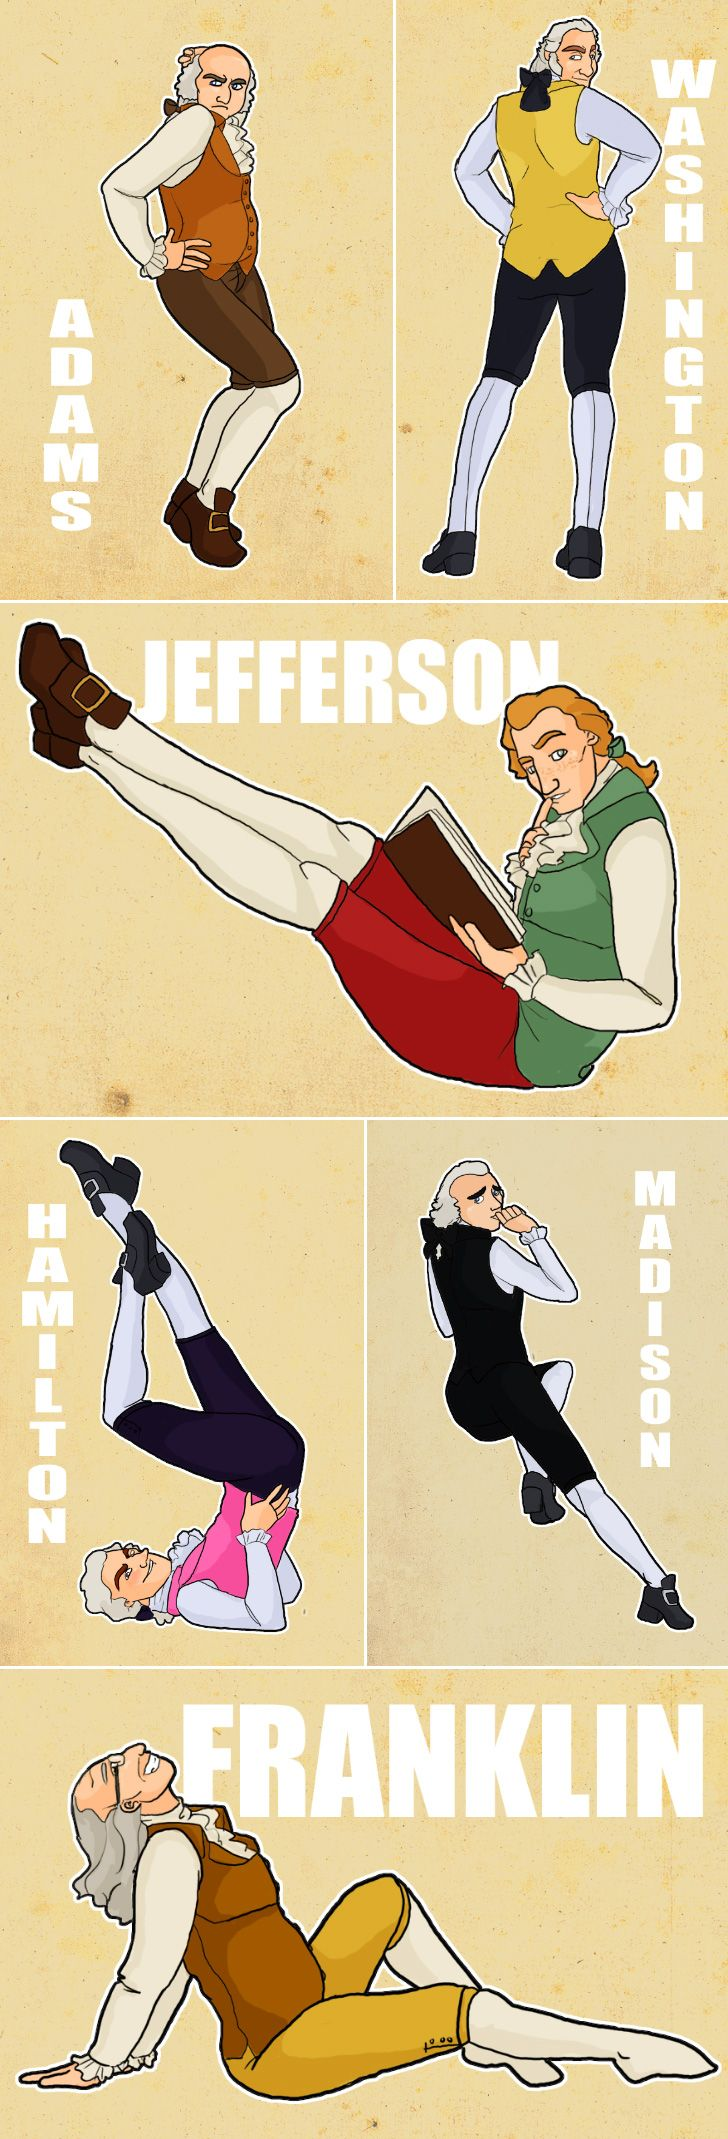 Founding father pin-ups -- strangely I find this quite hilarious! Like & Repin. Noelito Flow. Noel http://www.instagram.com/noelitoflow